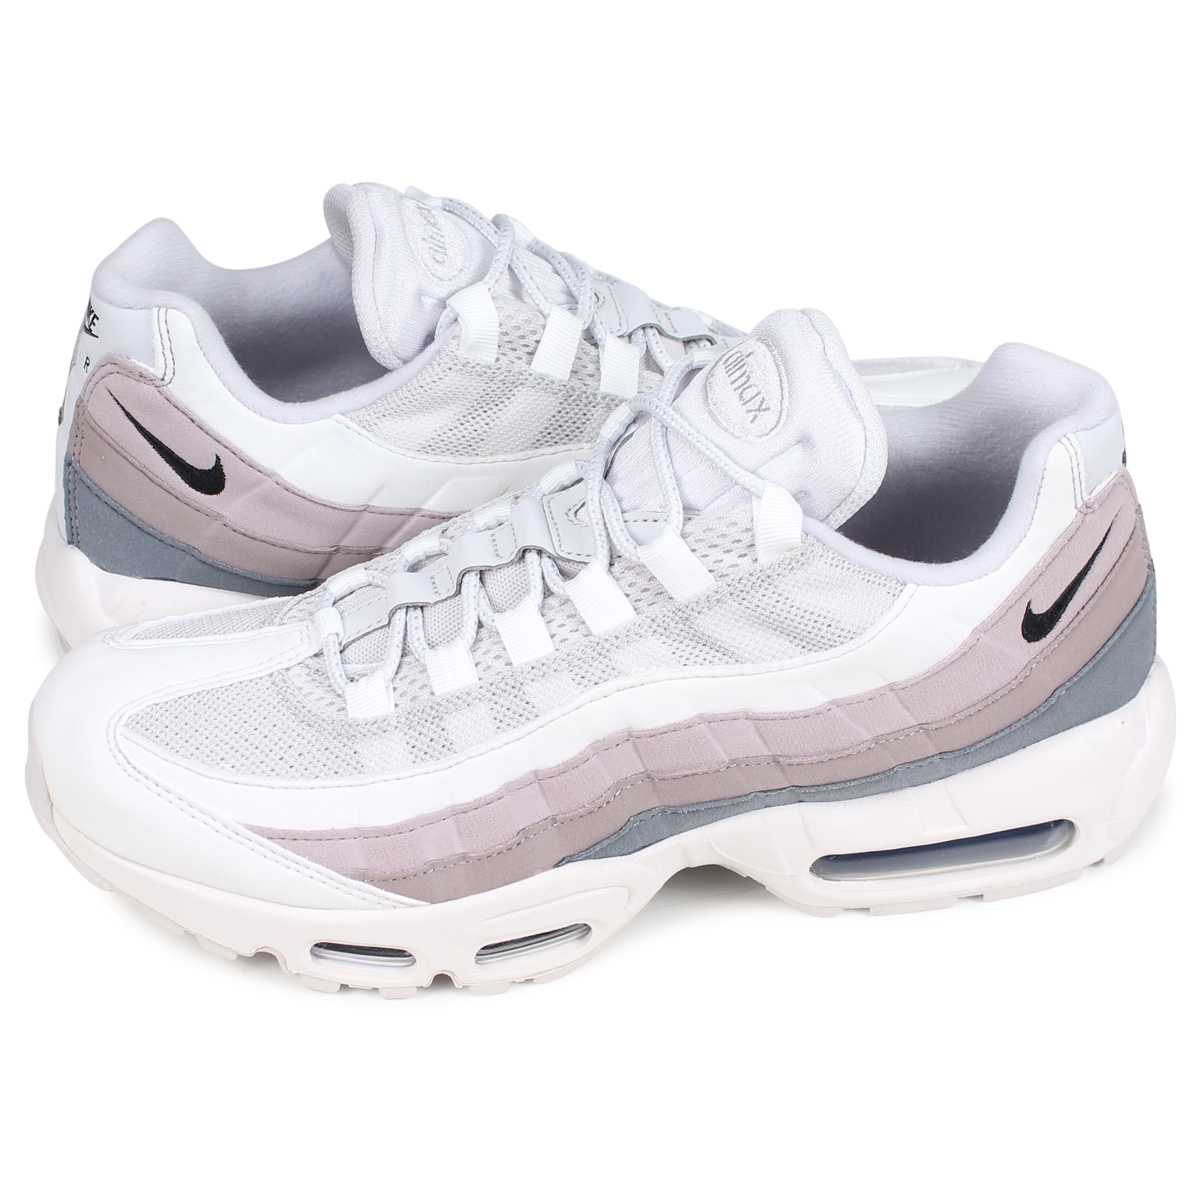 NIKE WMNS AIR MAX 95 VST GRY/OL GRY-SMMT WHT-VLT AS 19SU-I